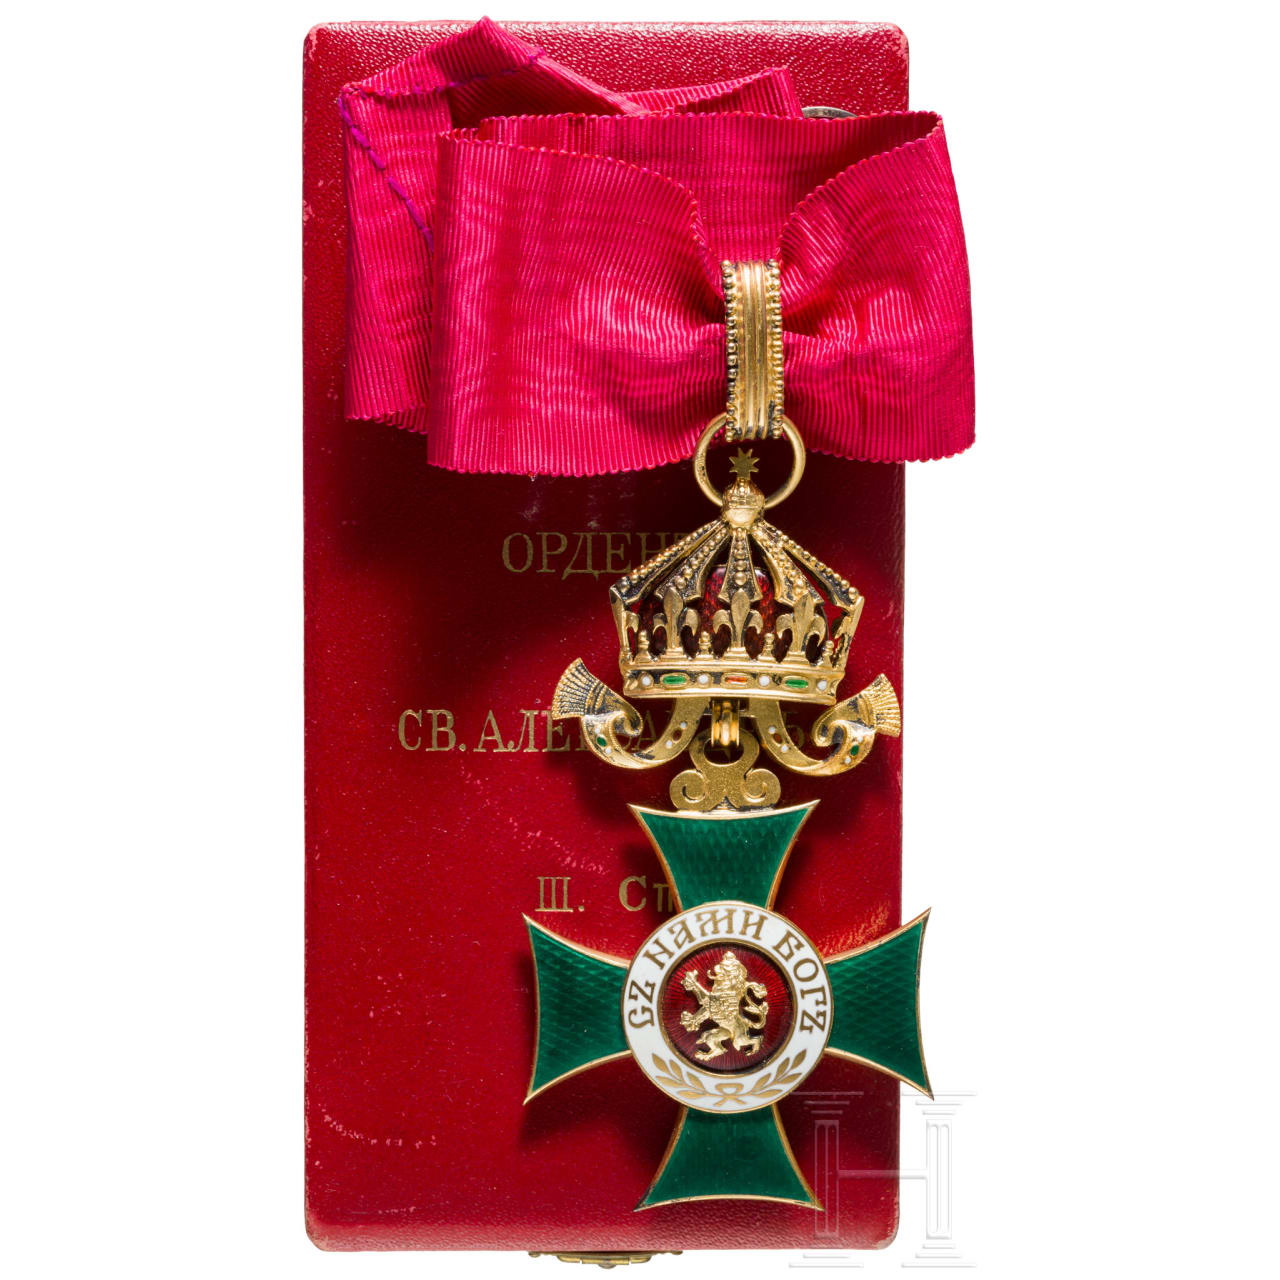 Kingdom of Bulgaria - Order of St. Alexander 3rd model from 1918 - III. class, Commander's Cross